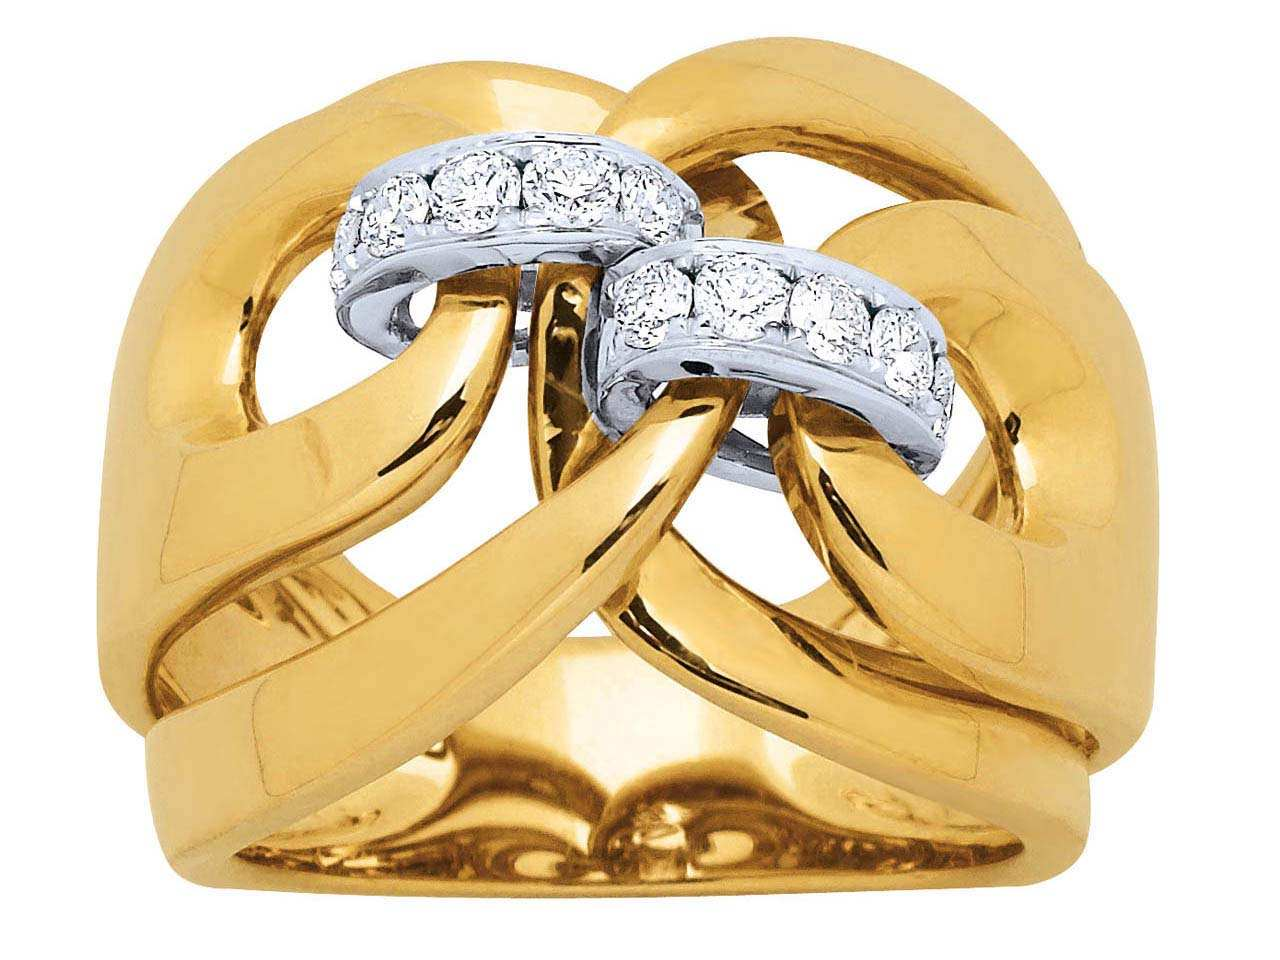 Bague liens Or jaune, diamants 0,43 ct, doigt 52